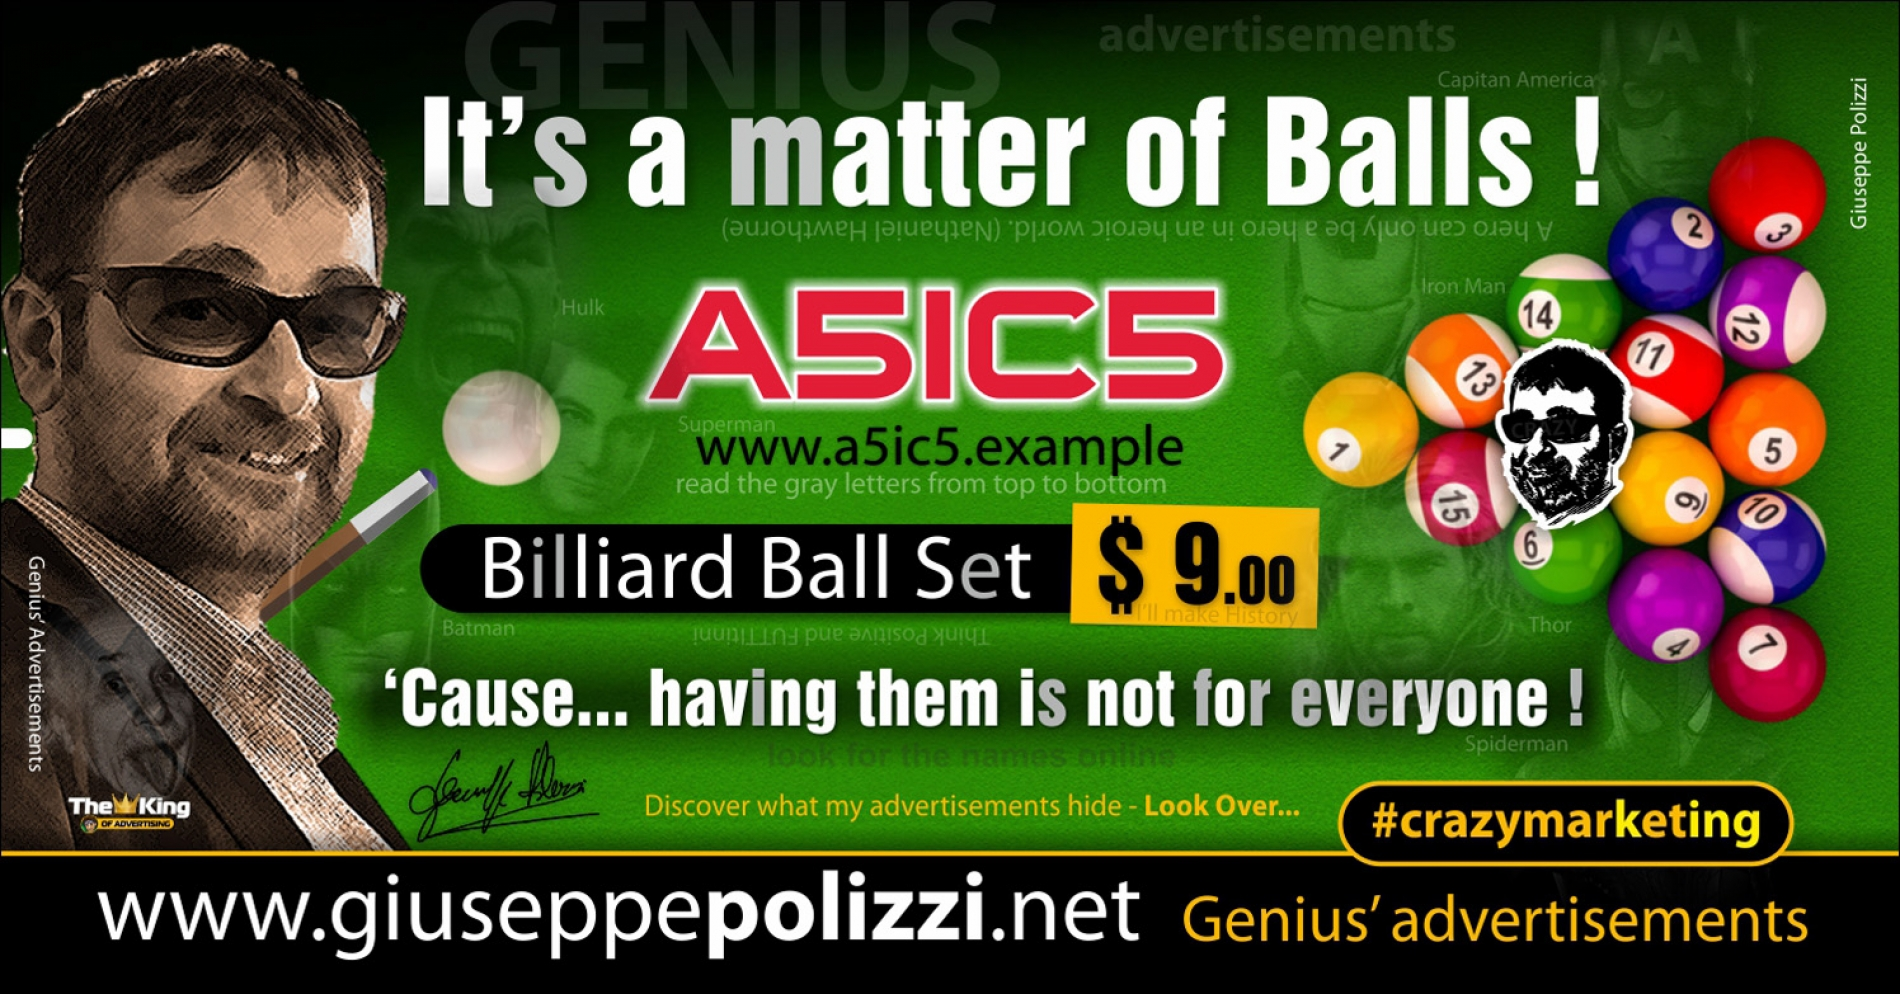 giuseppe Polizzi It is a matter of Balls crazymarketing genius ing